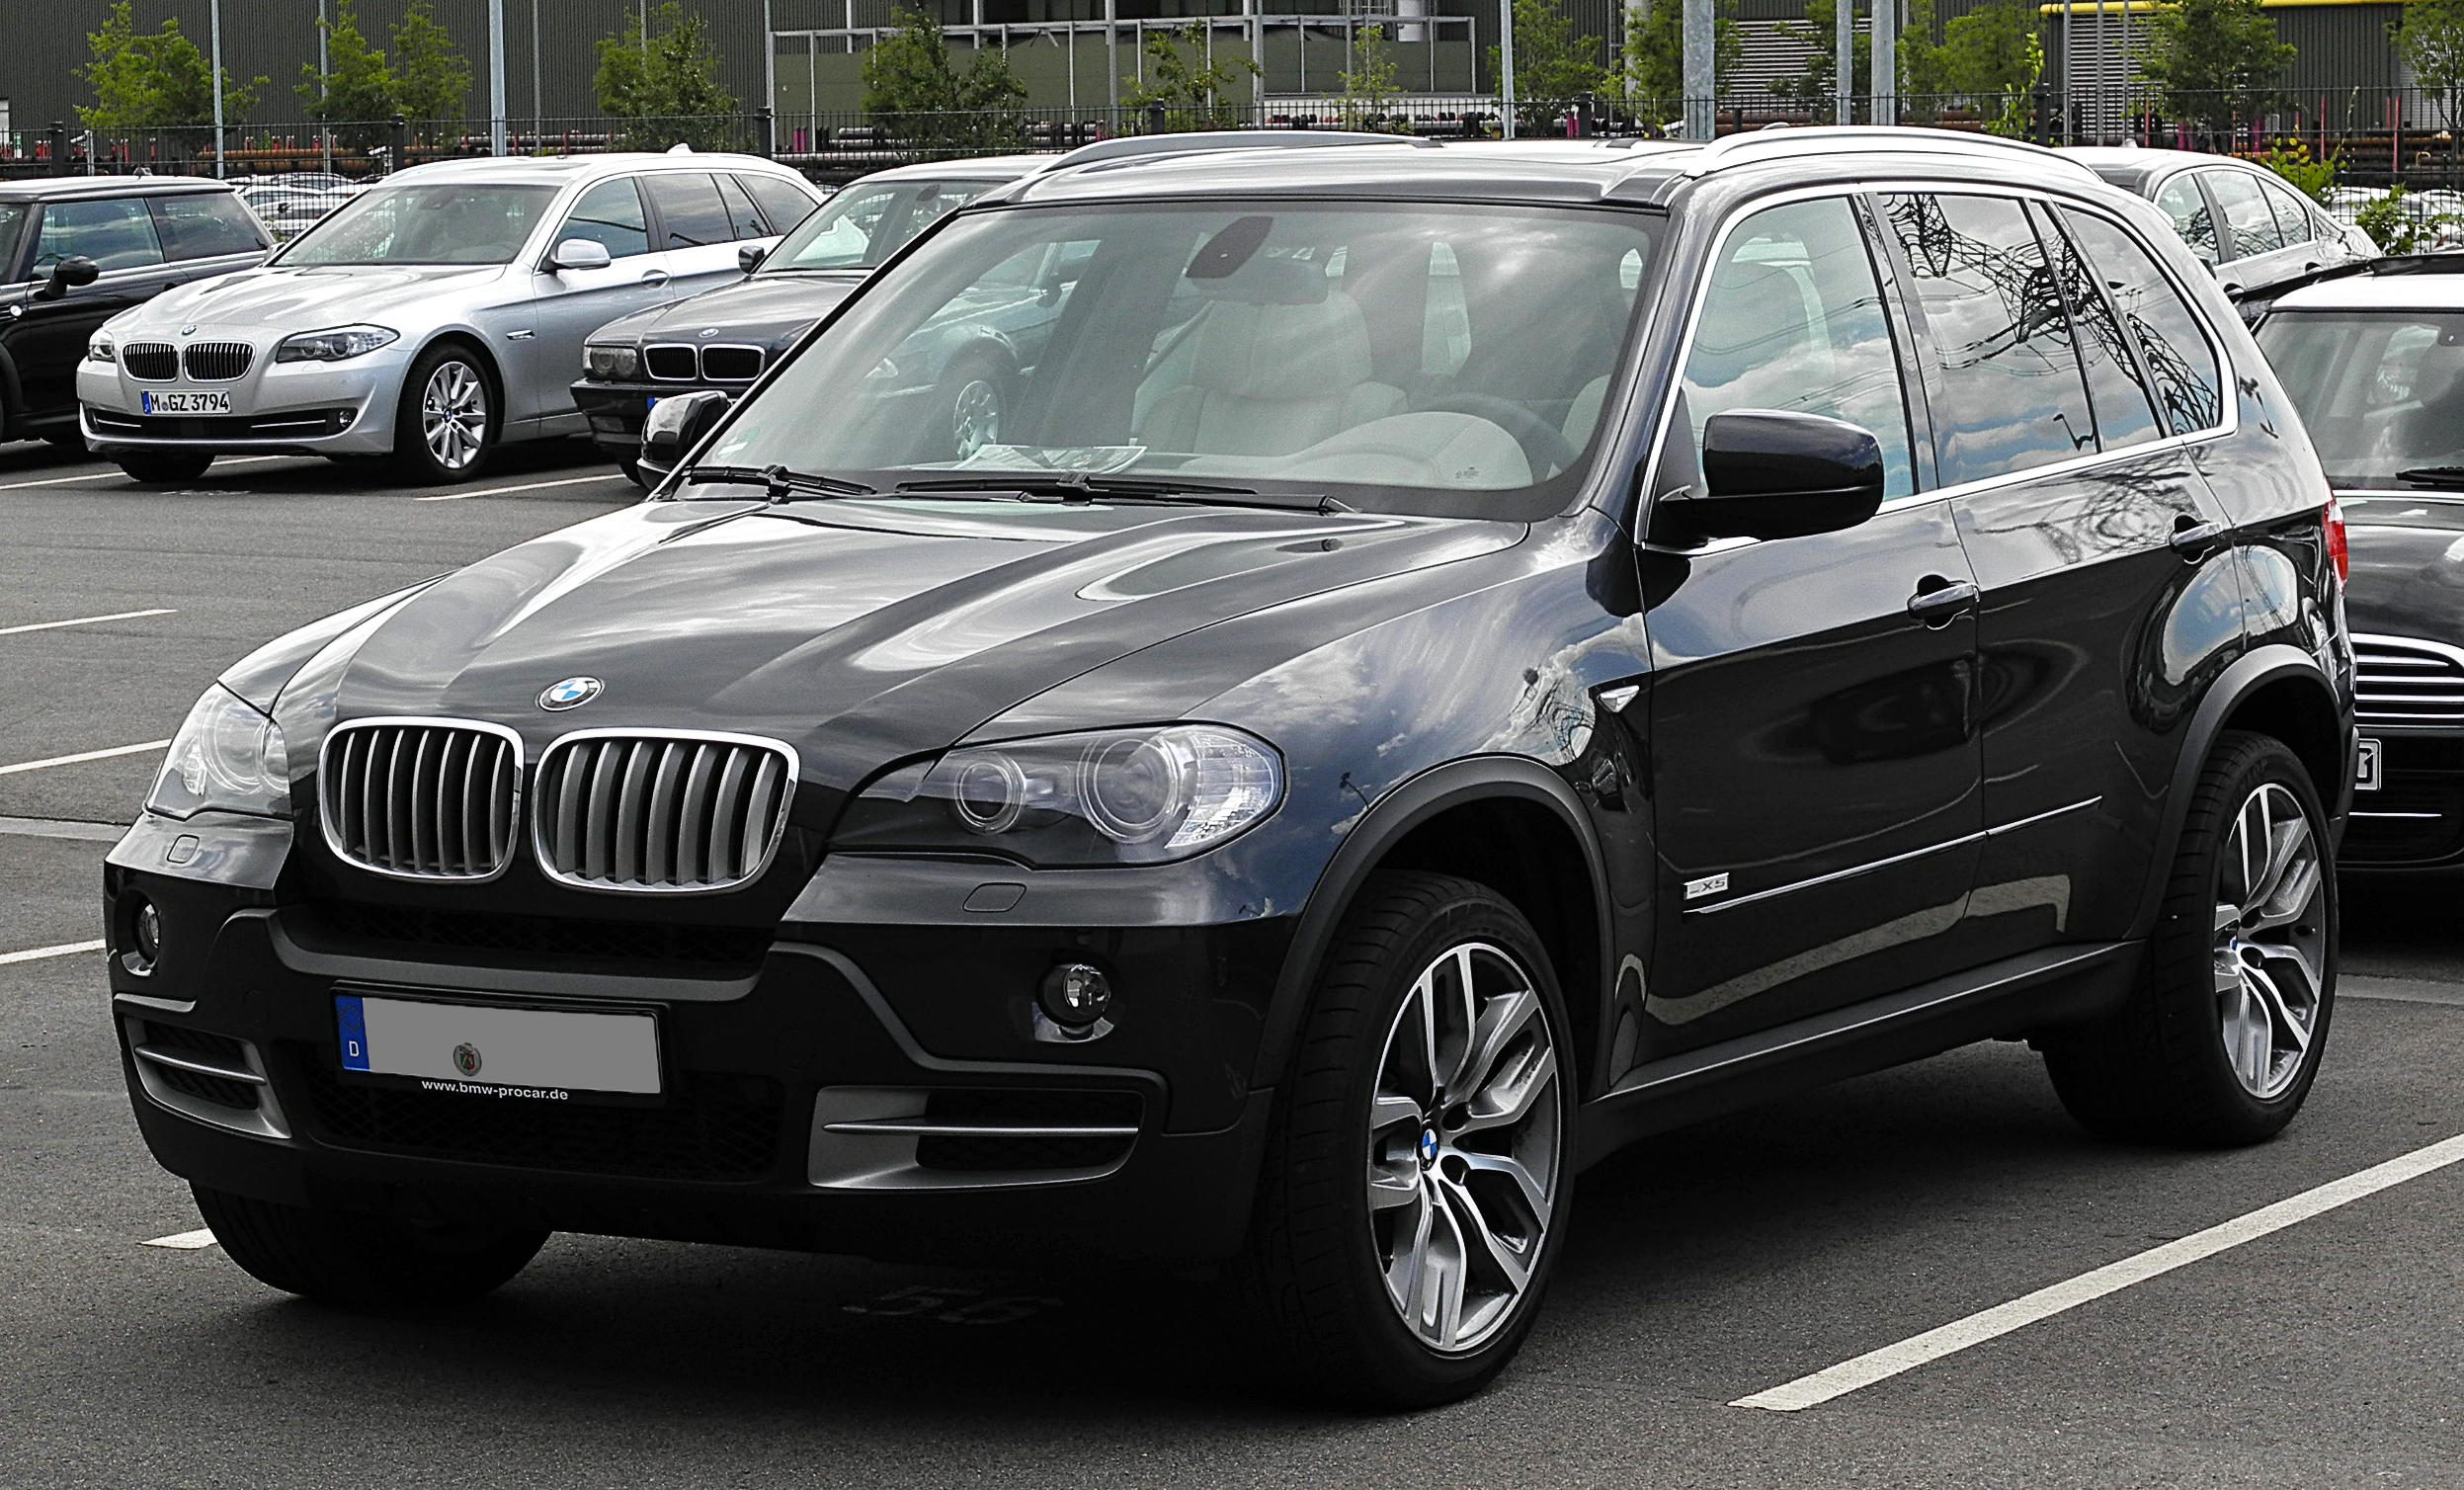 2011 Bmw X5 m (e70) - pictures, information and specs - Auto-Database.com